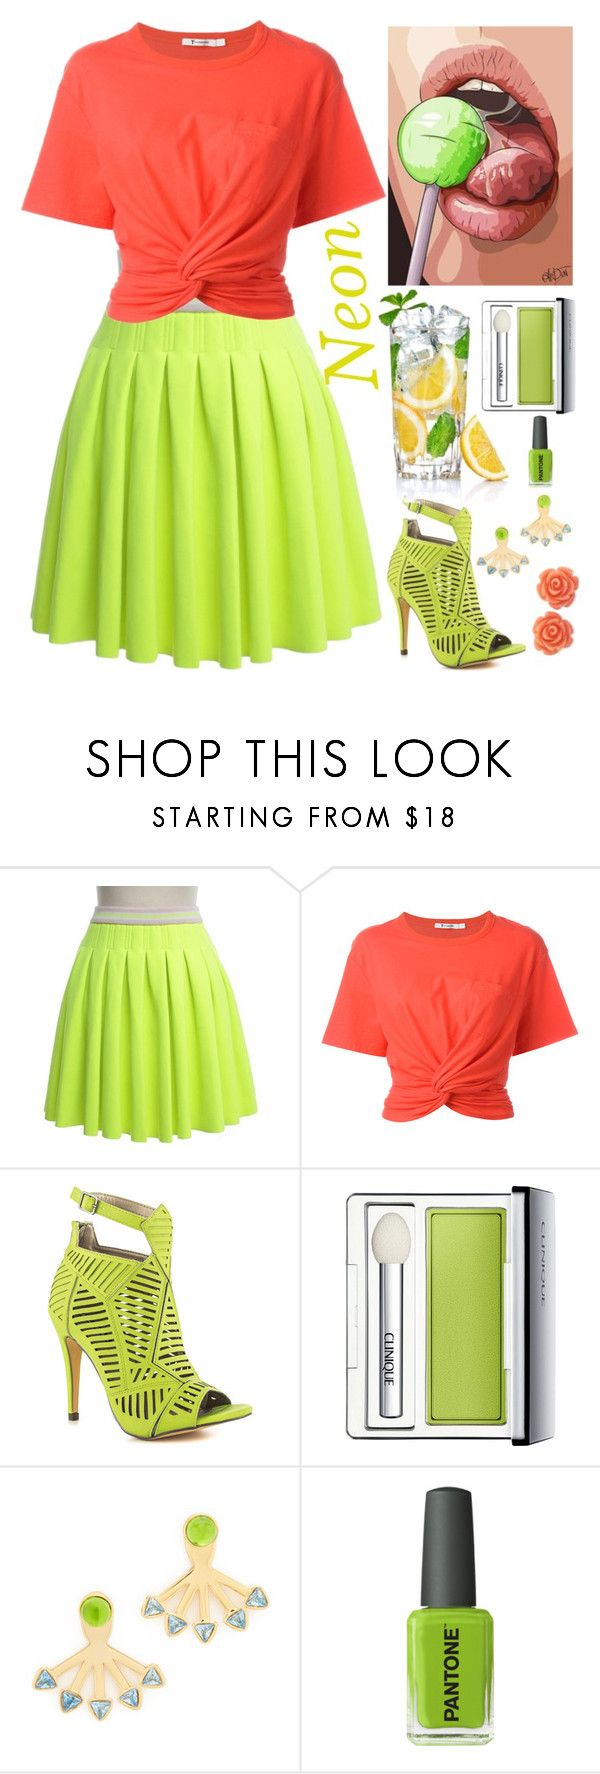 """""""Neon"""" by sukia ❤ liked on Polyvore featuring Manoush, Alexander Wang, Michael Antonio, Clinique, Rebecca Minkoff, Kester Black and Eternally Haute"""